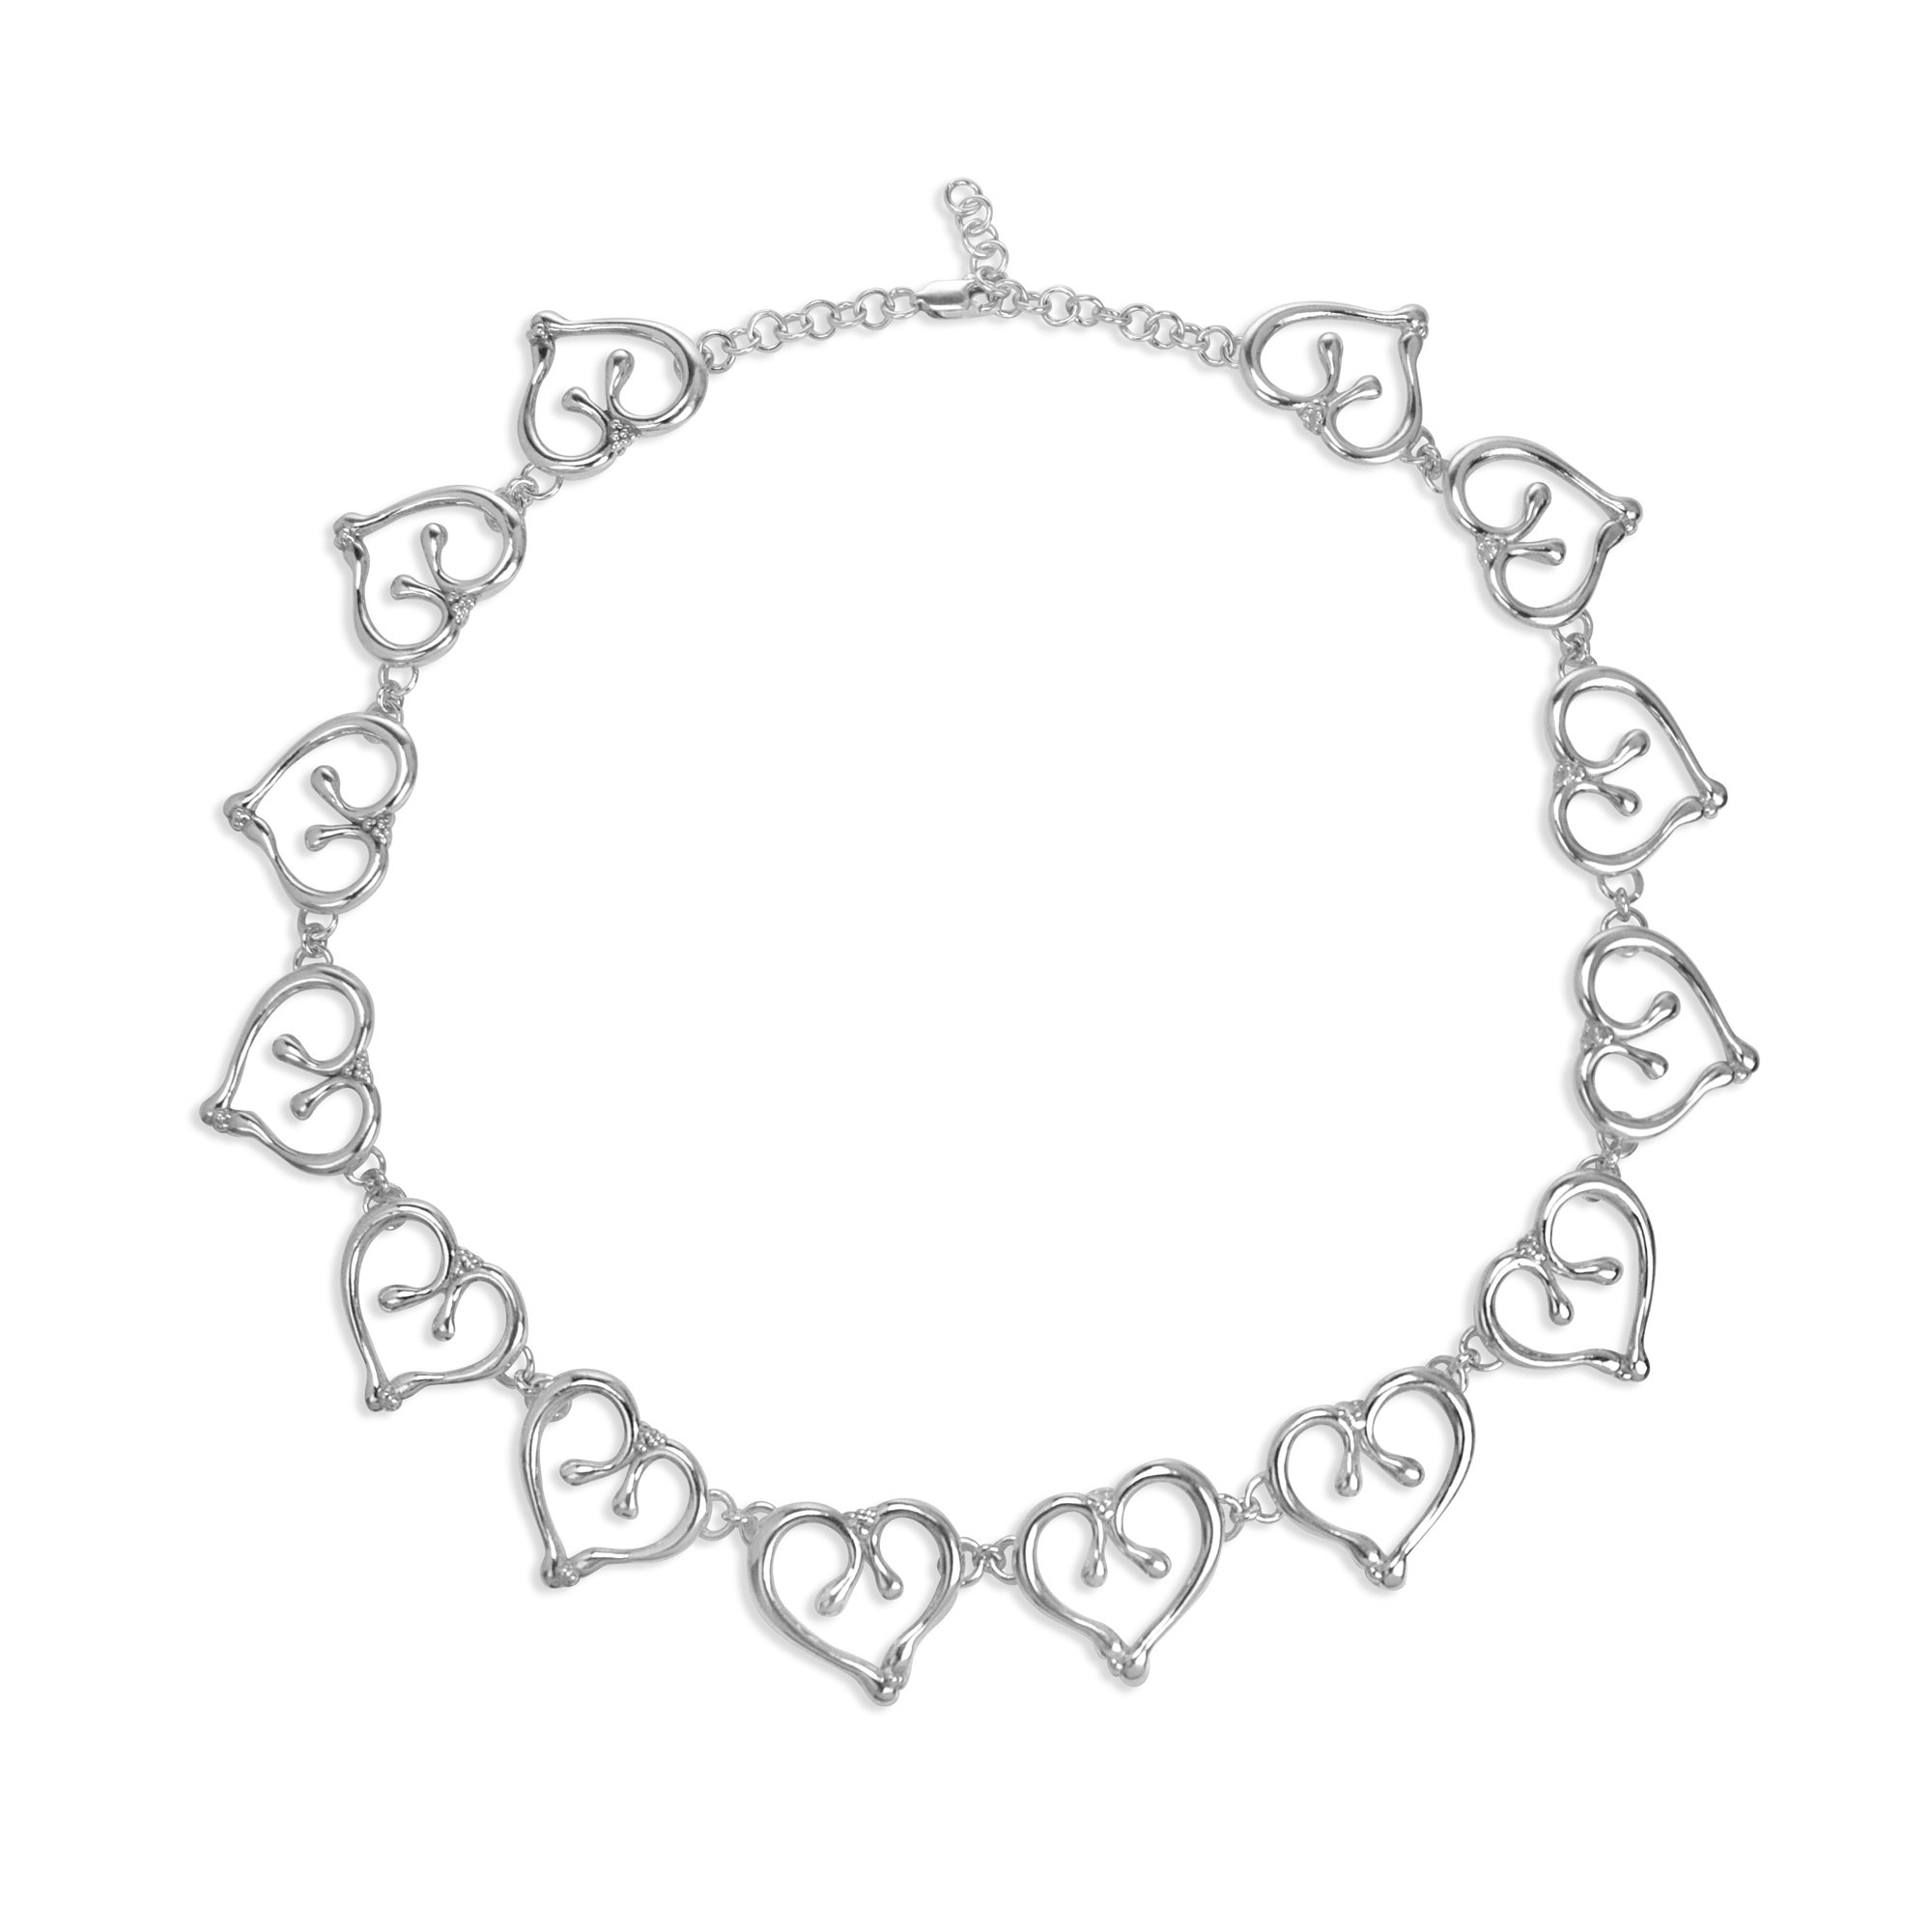 Ginkgo Heart Necklace By Chiachien Tsai Silver Necklace